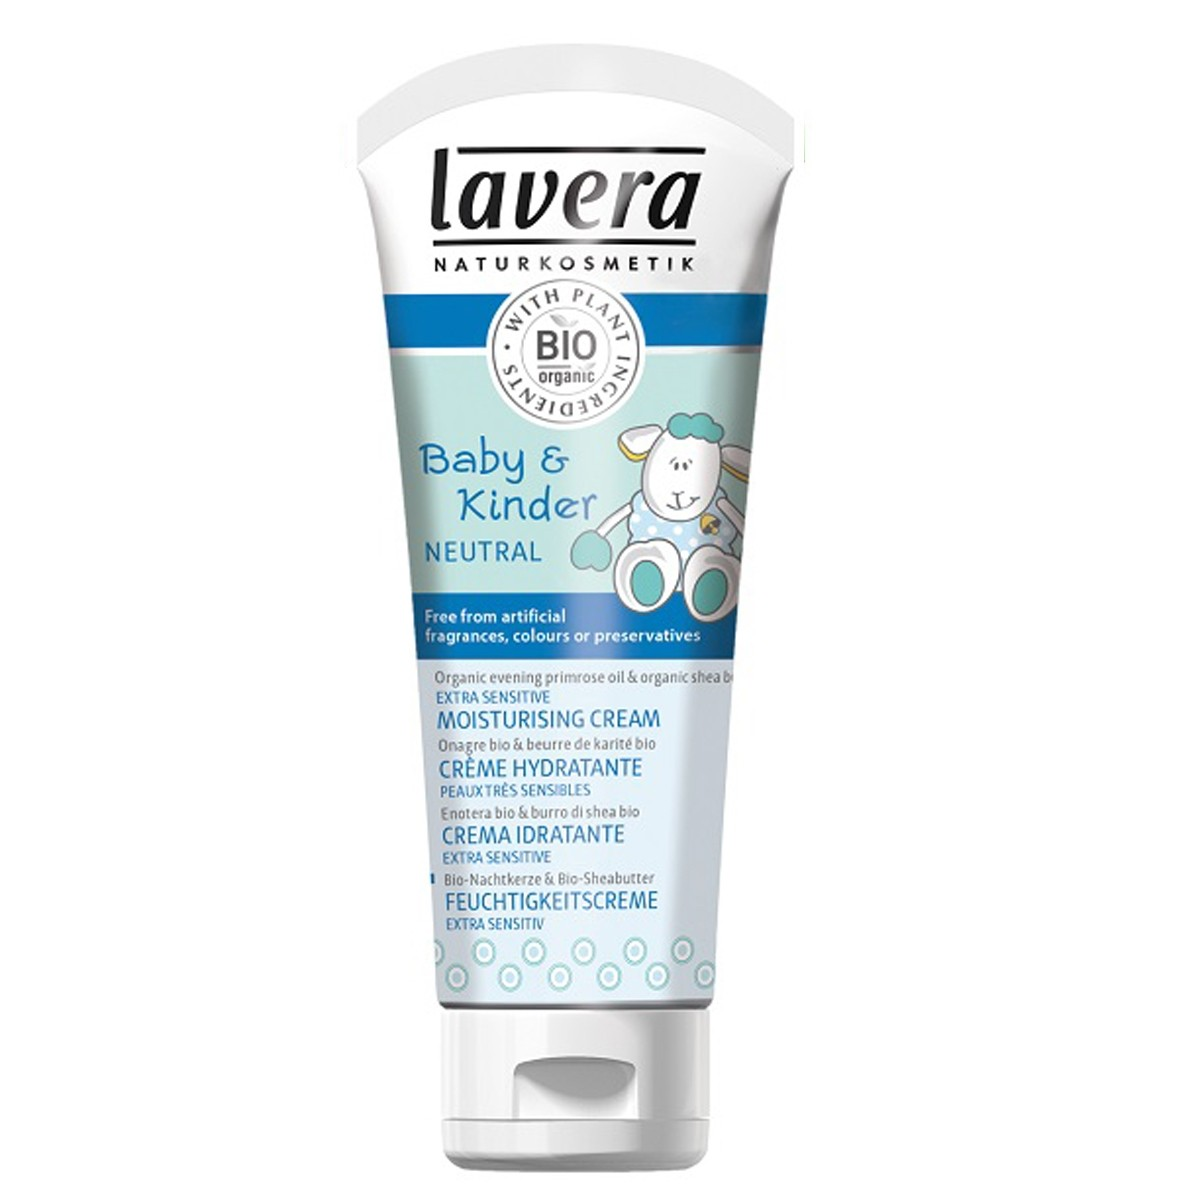 Lavera Baby & Kinder Neutral Moisturising Cream